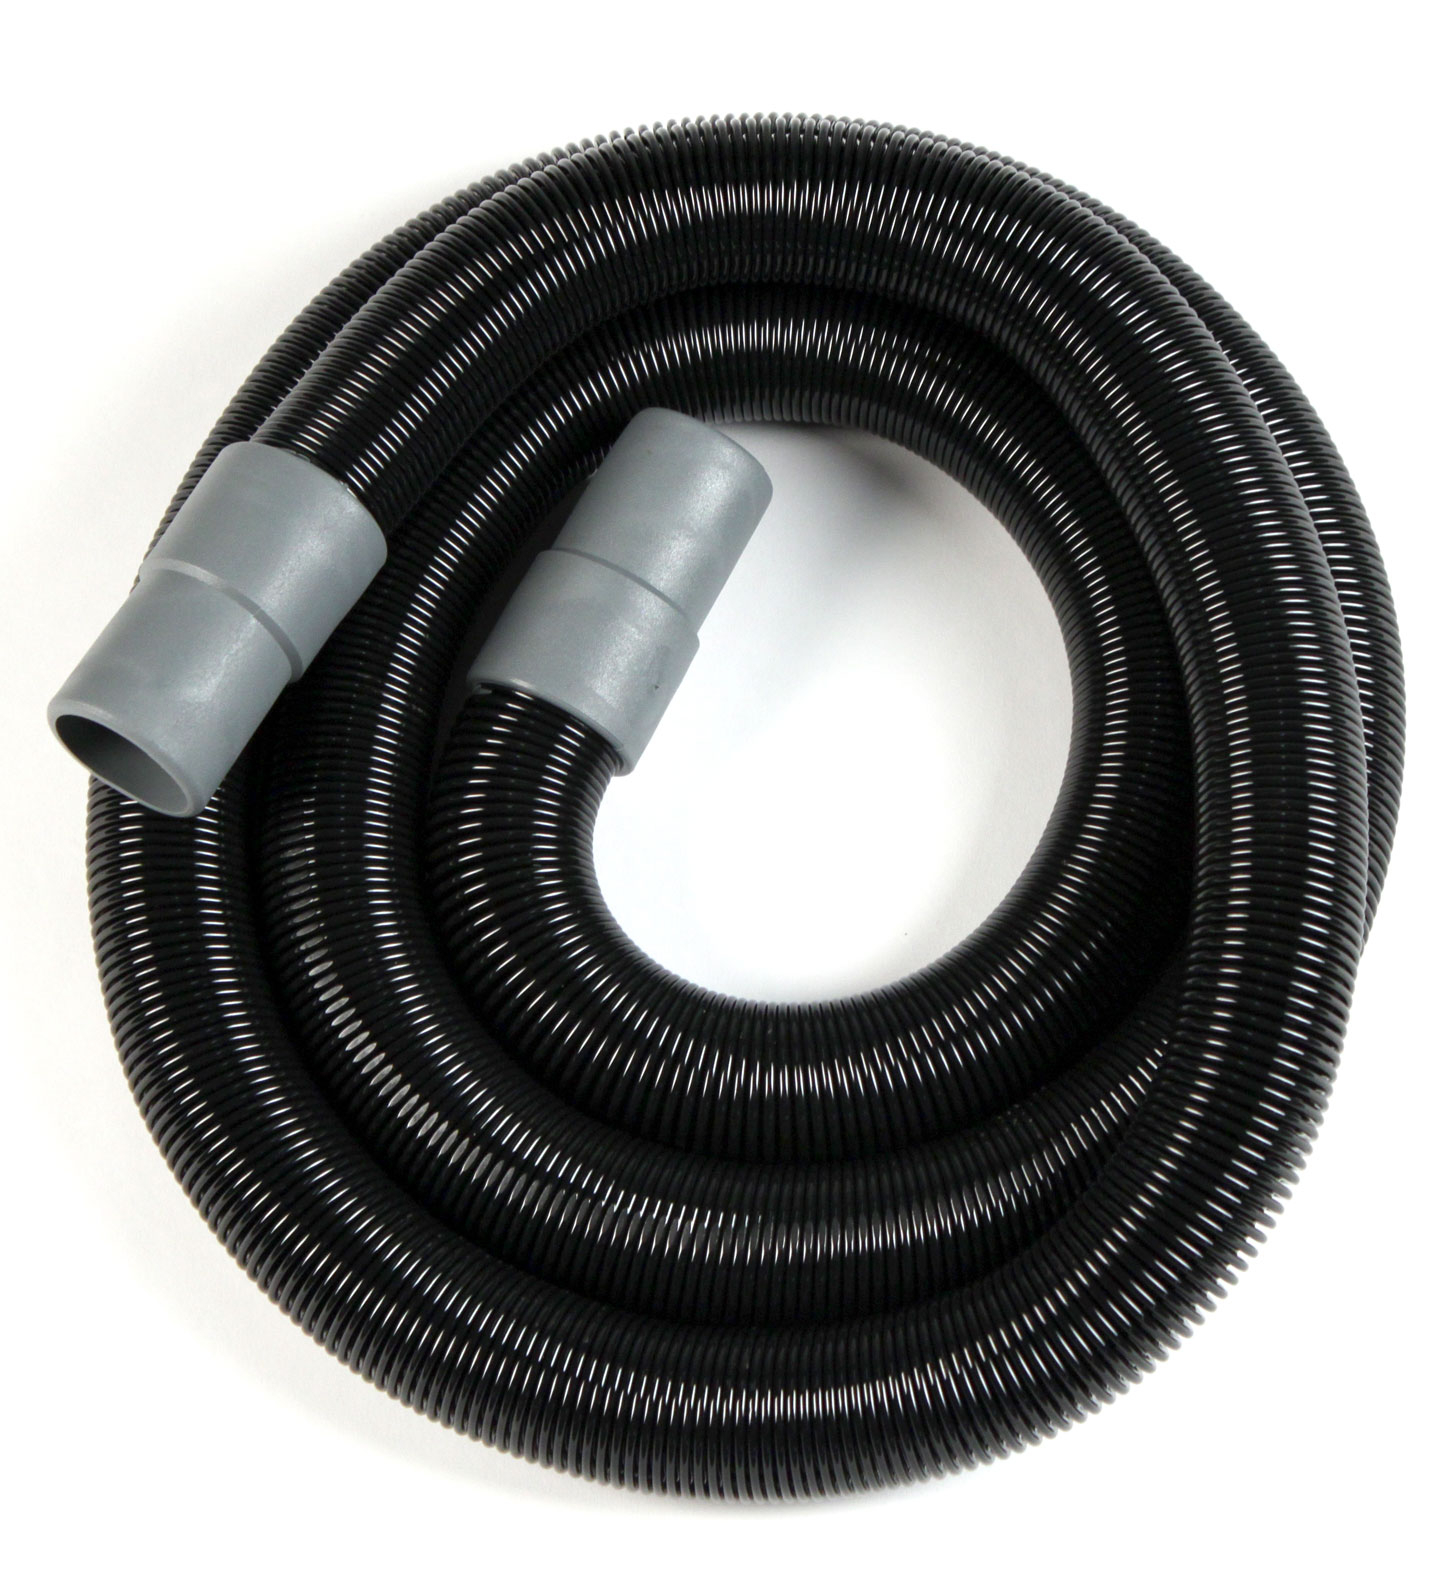 33-foot Blow Hose